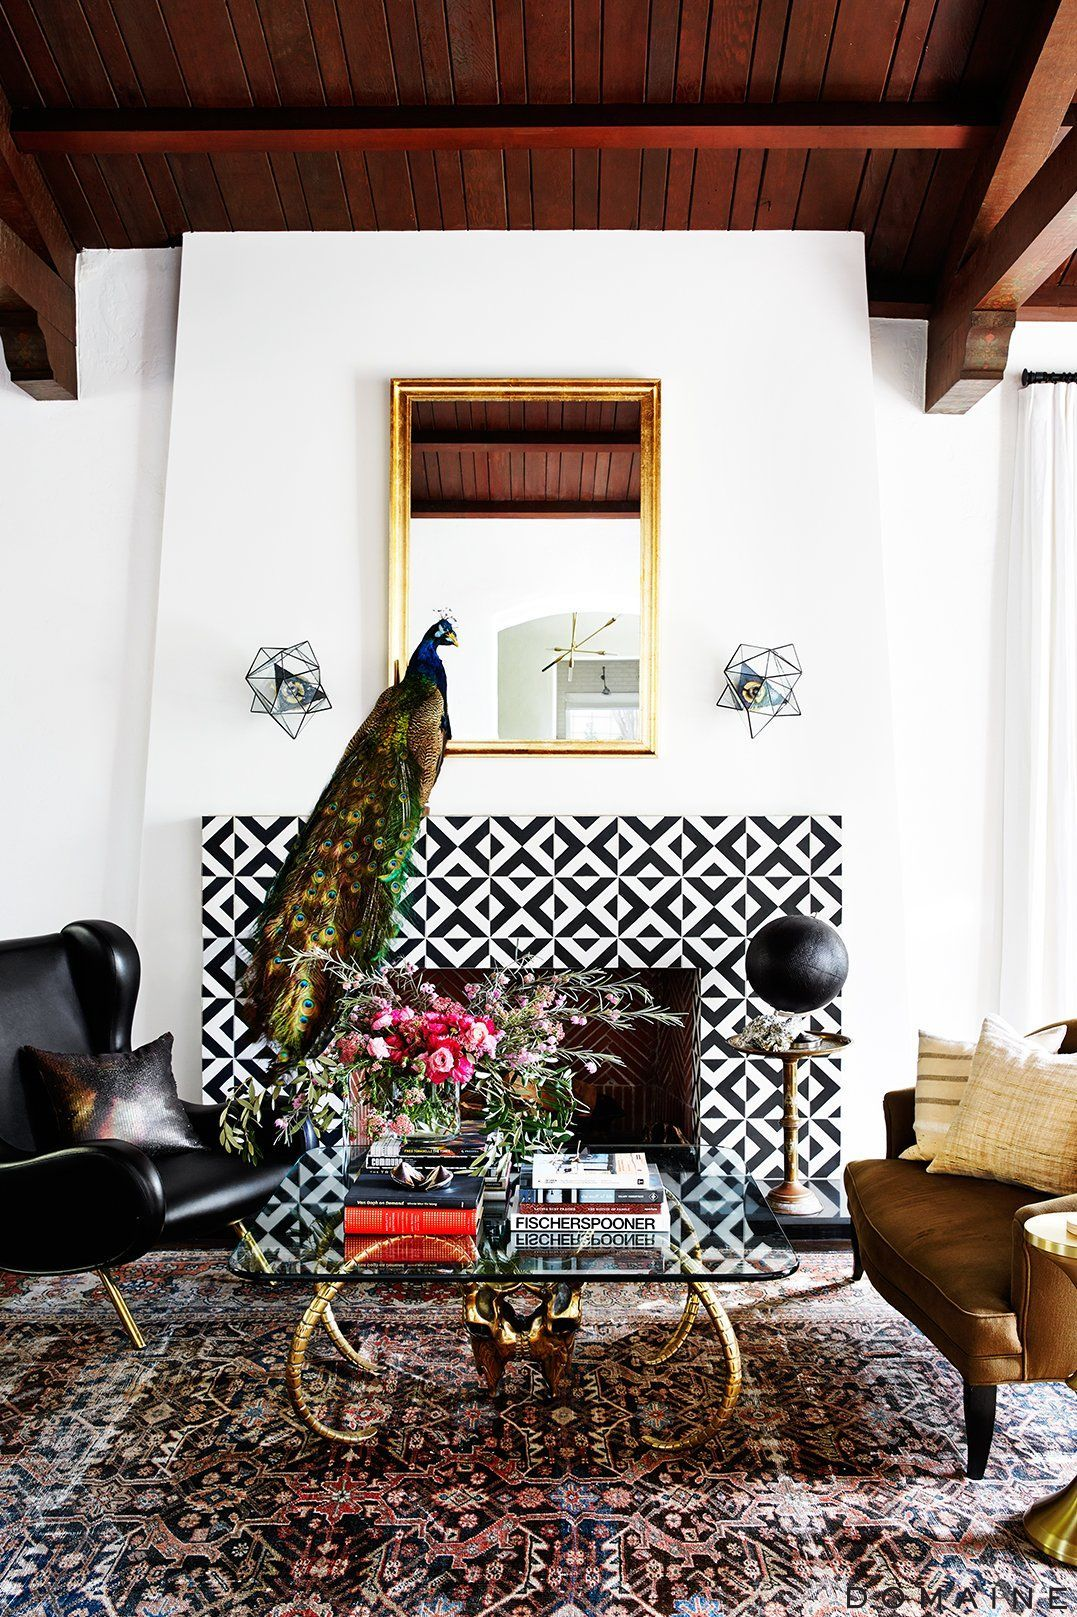 Love the tile surround! in 2020 Home decor, Fireplace